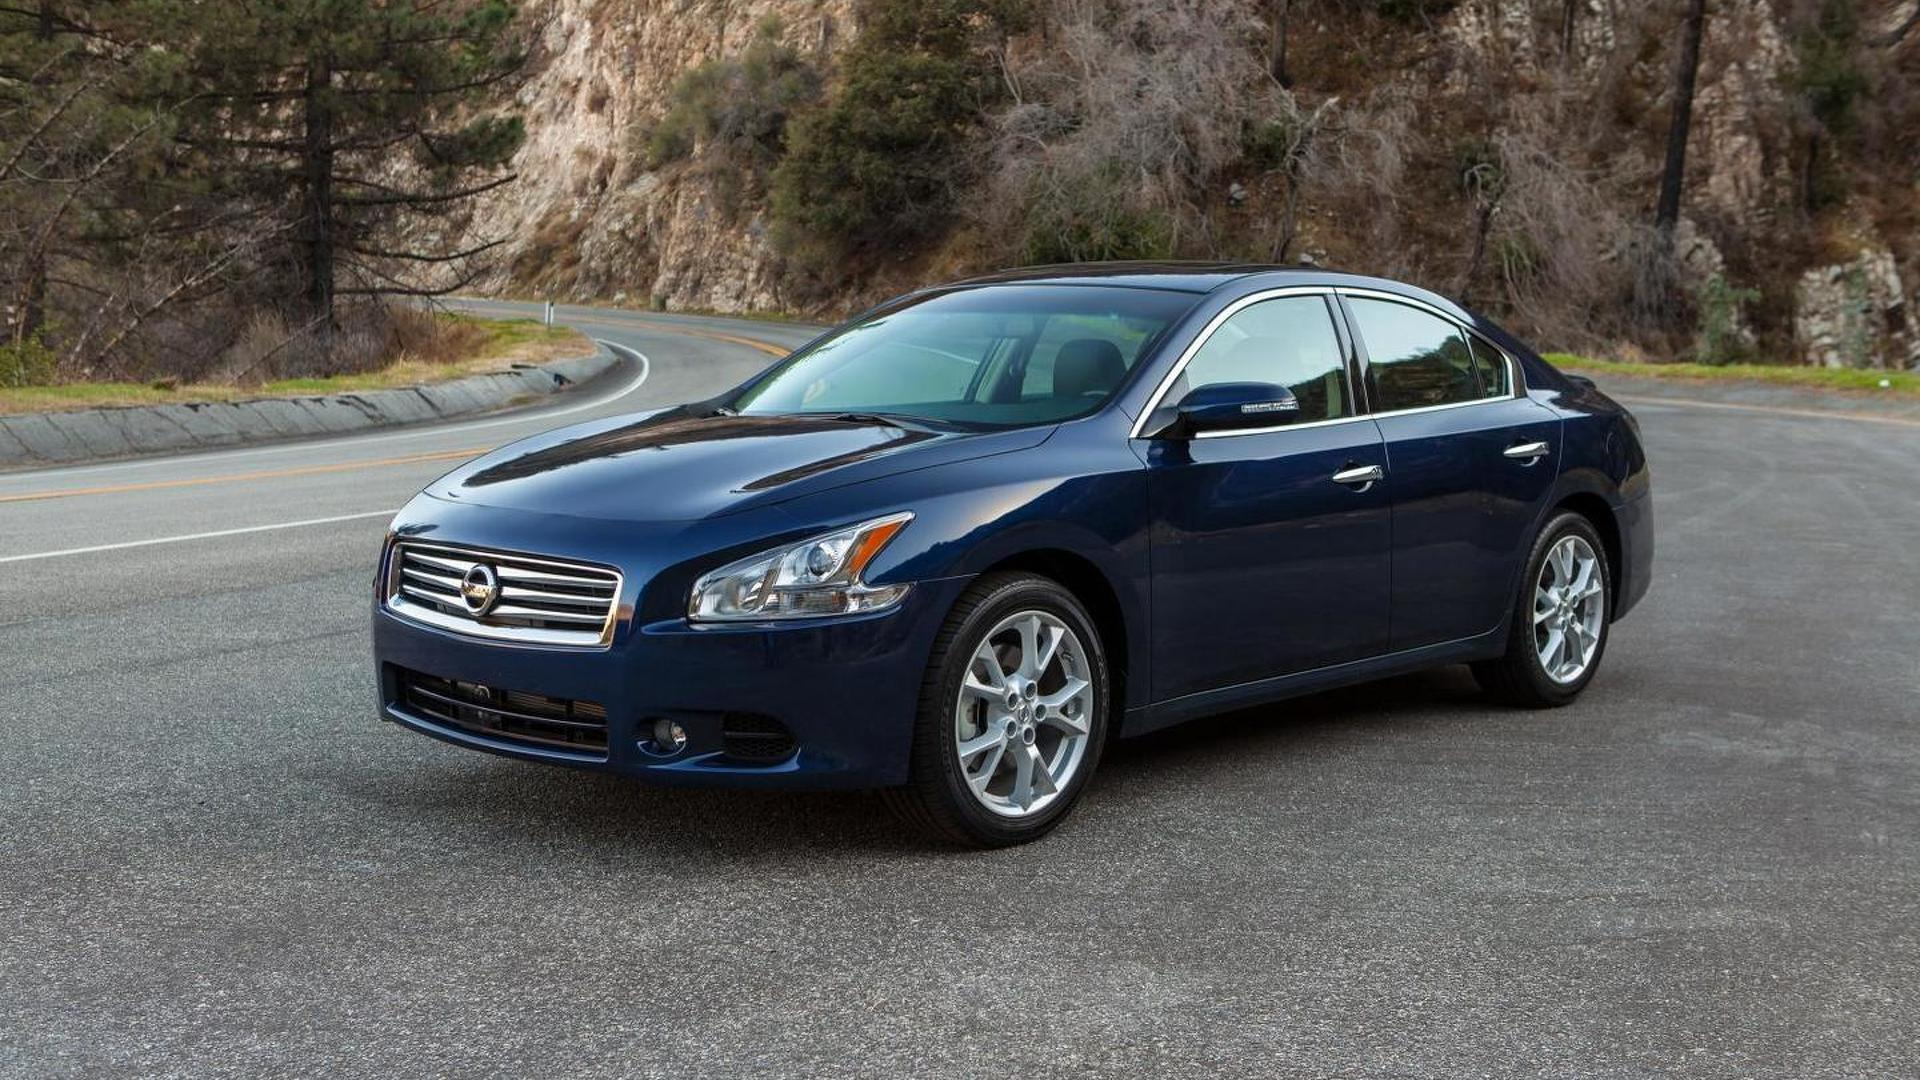 2014 Nissan Maxima gets minor upgrades, starts at 31,000 USD